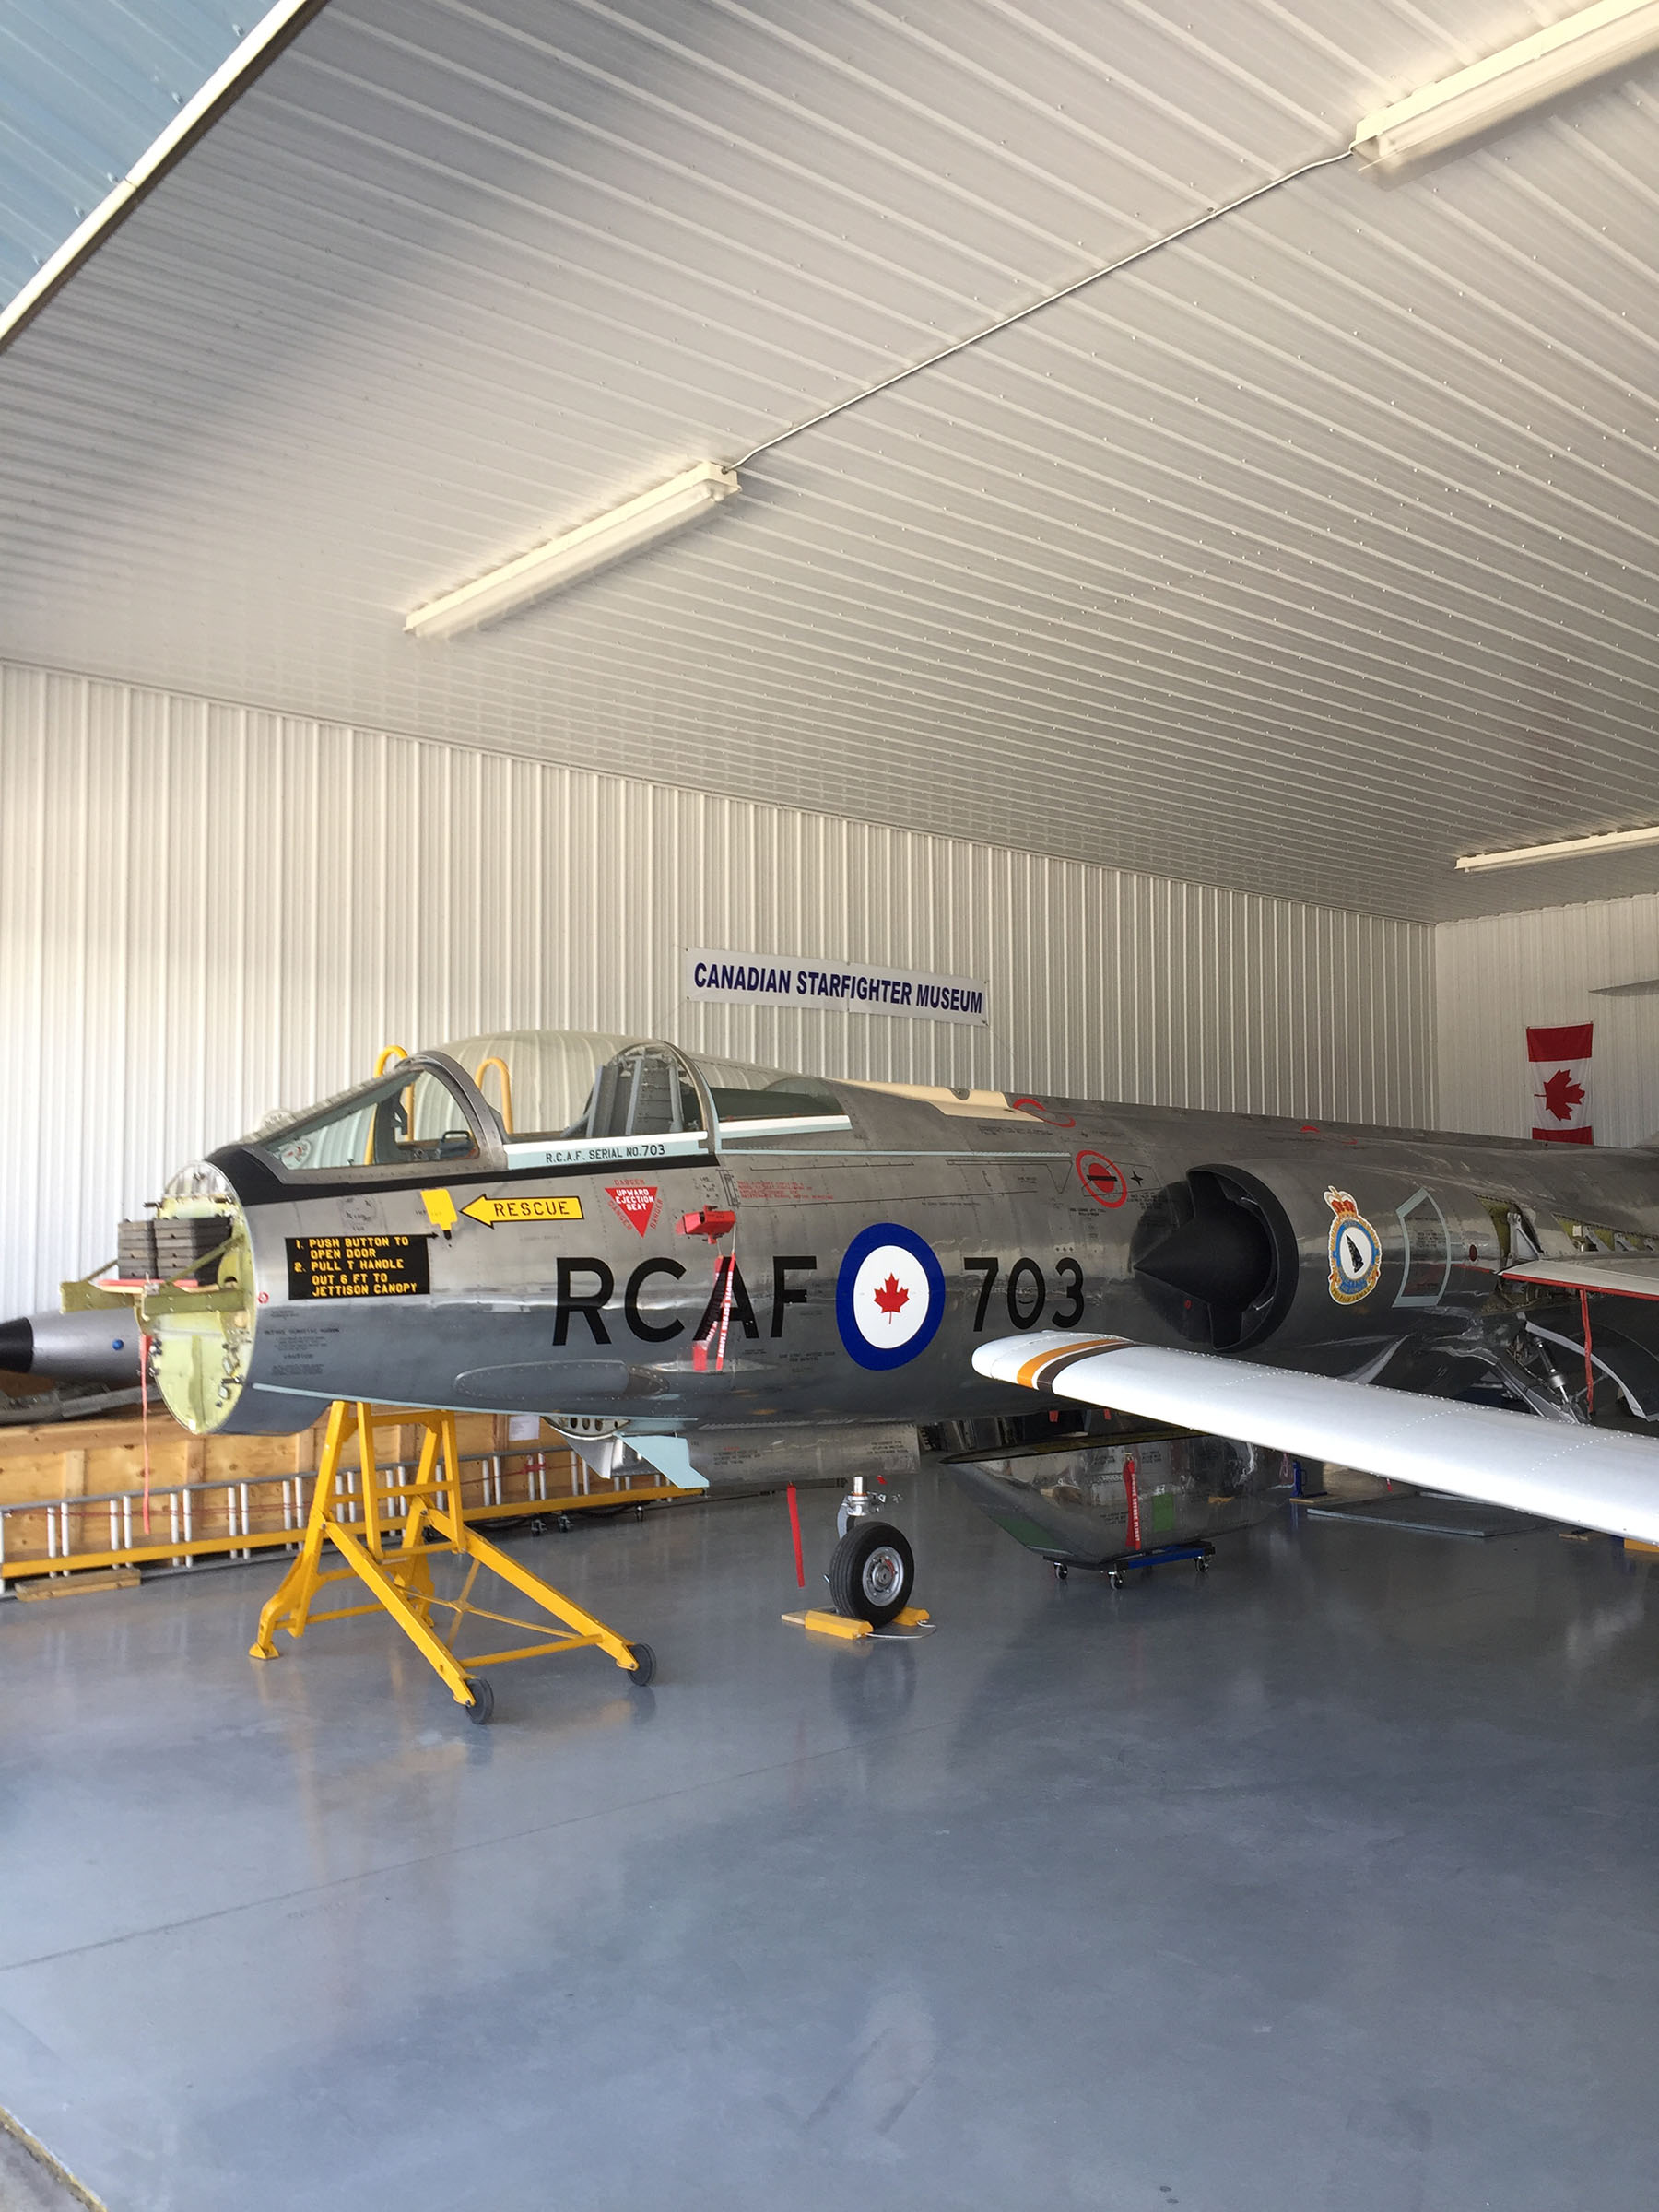 The Canadian Starfighter Museum's nearly completed Starfighter renewal project. PHOTO: Martin Zeilig